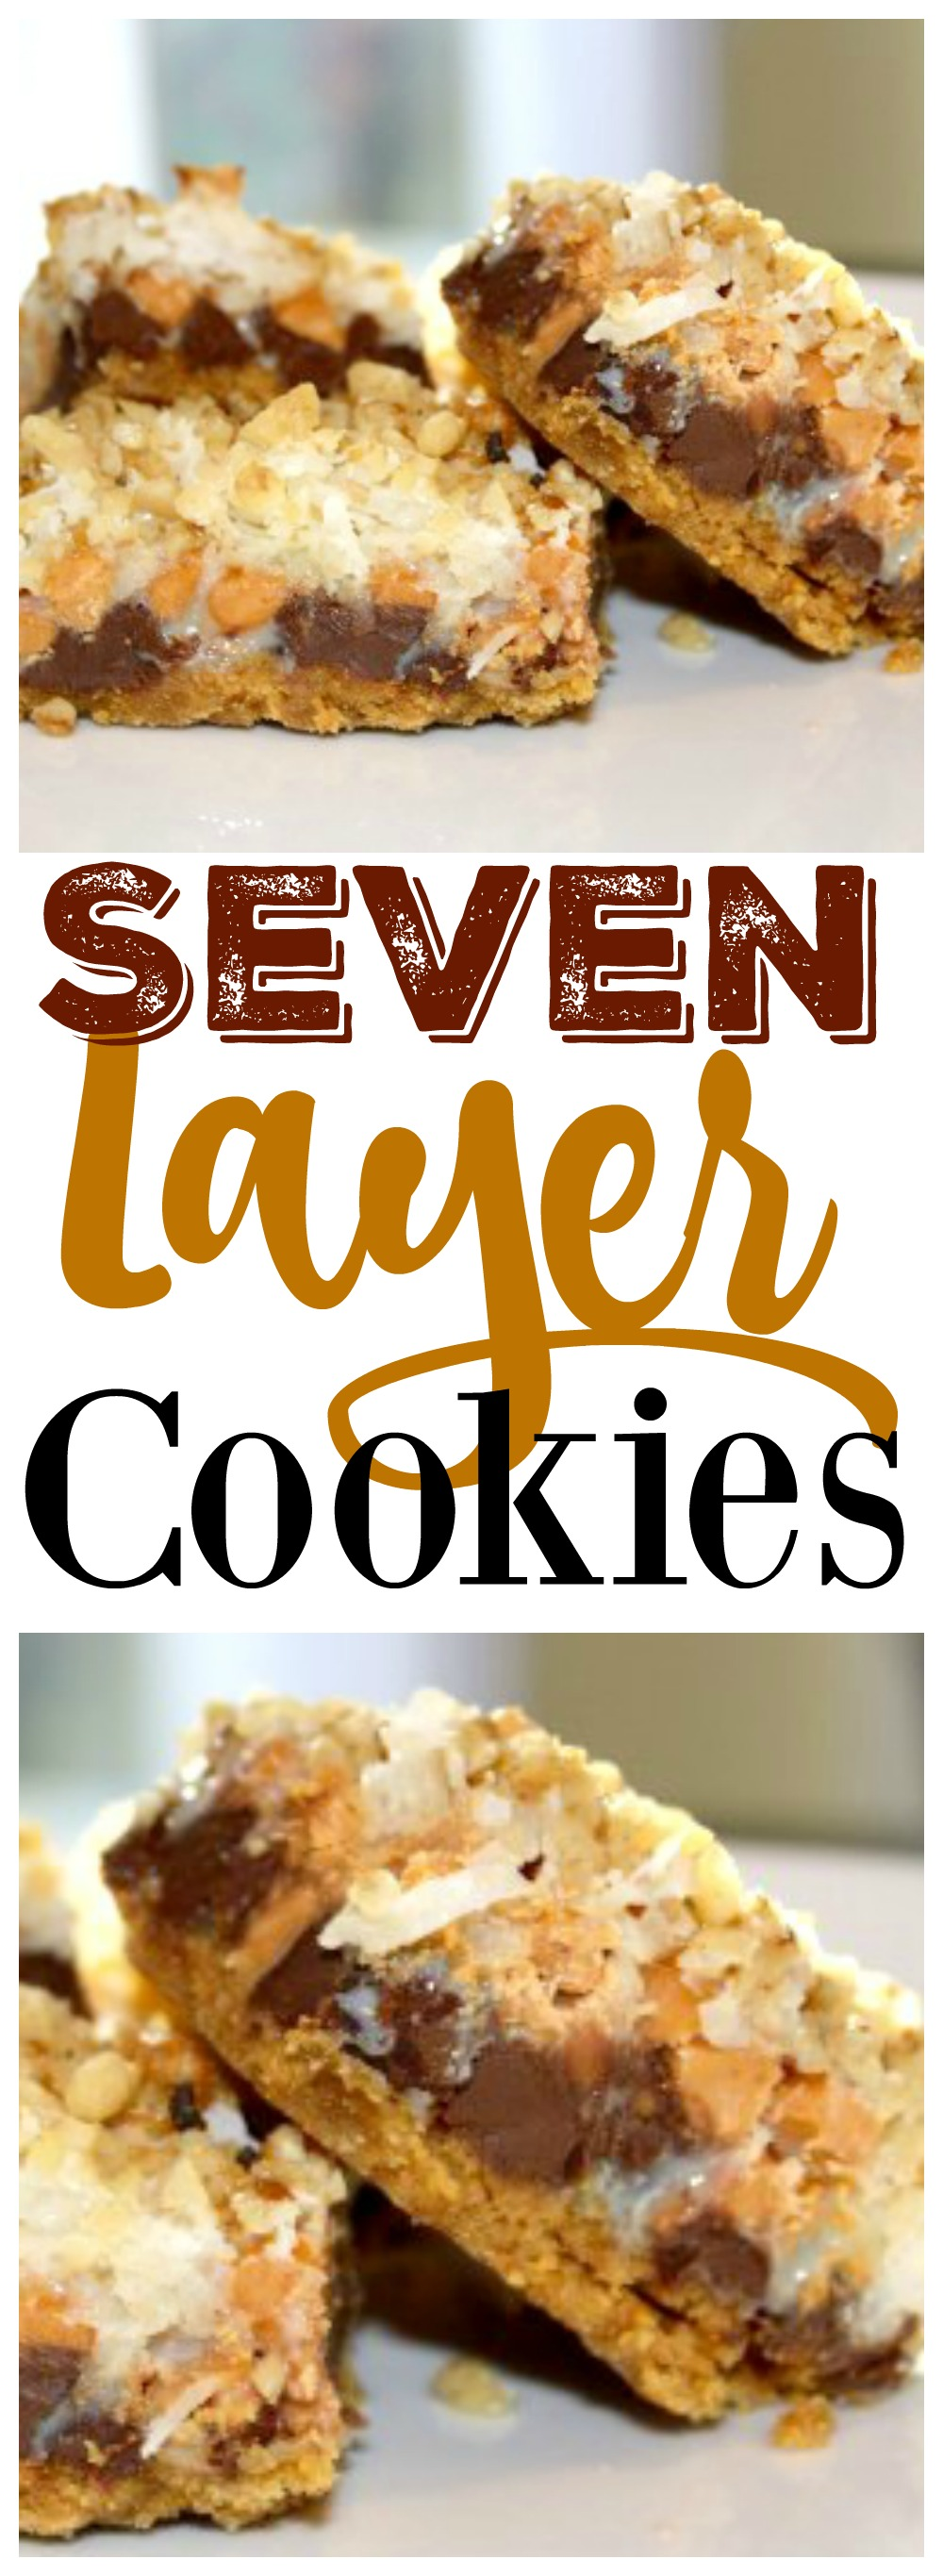 These seven layer cookies are my all-time favorite Christmas cookie recipe!  Thy're so easy to make and a huge crowd pleaser.  Enjoy!